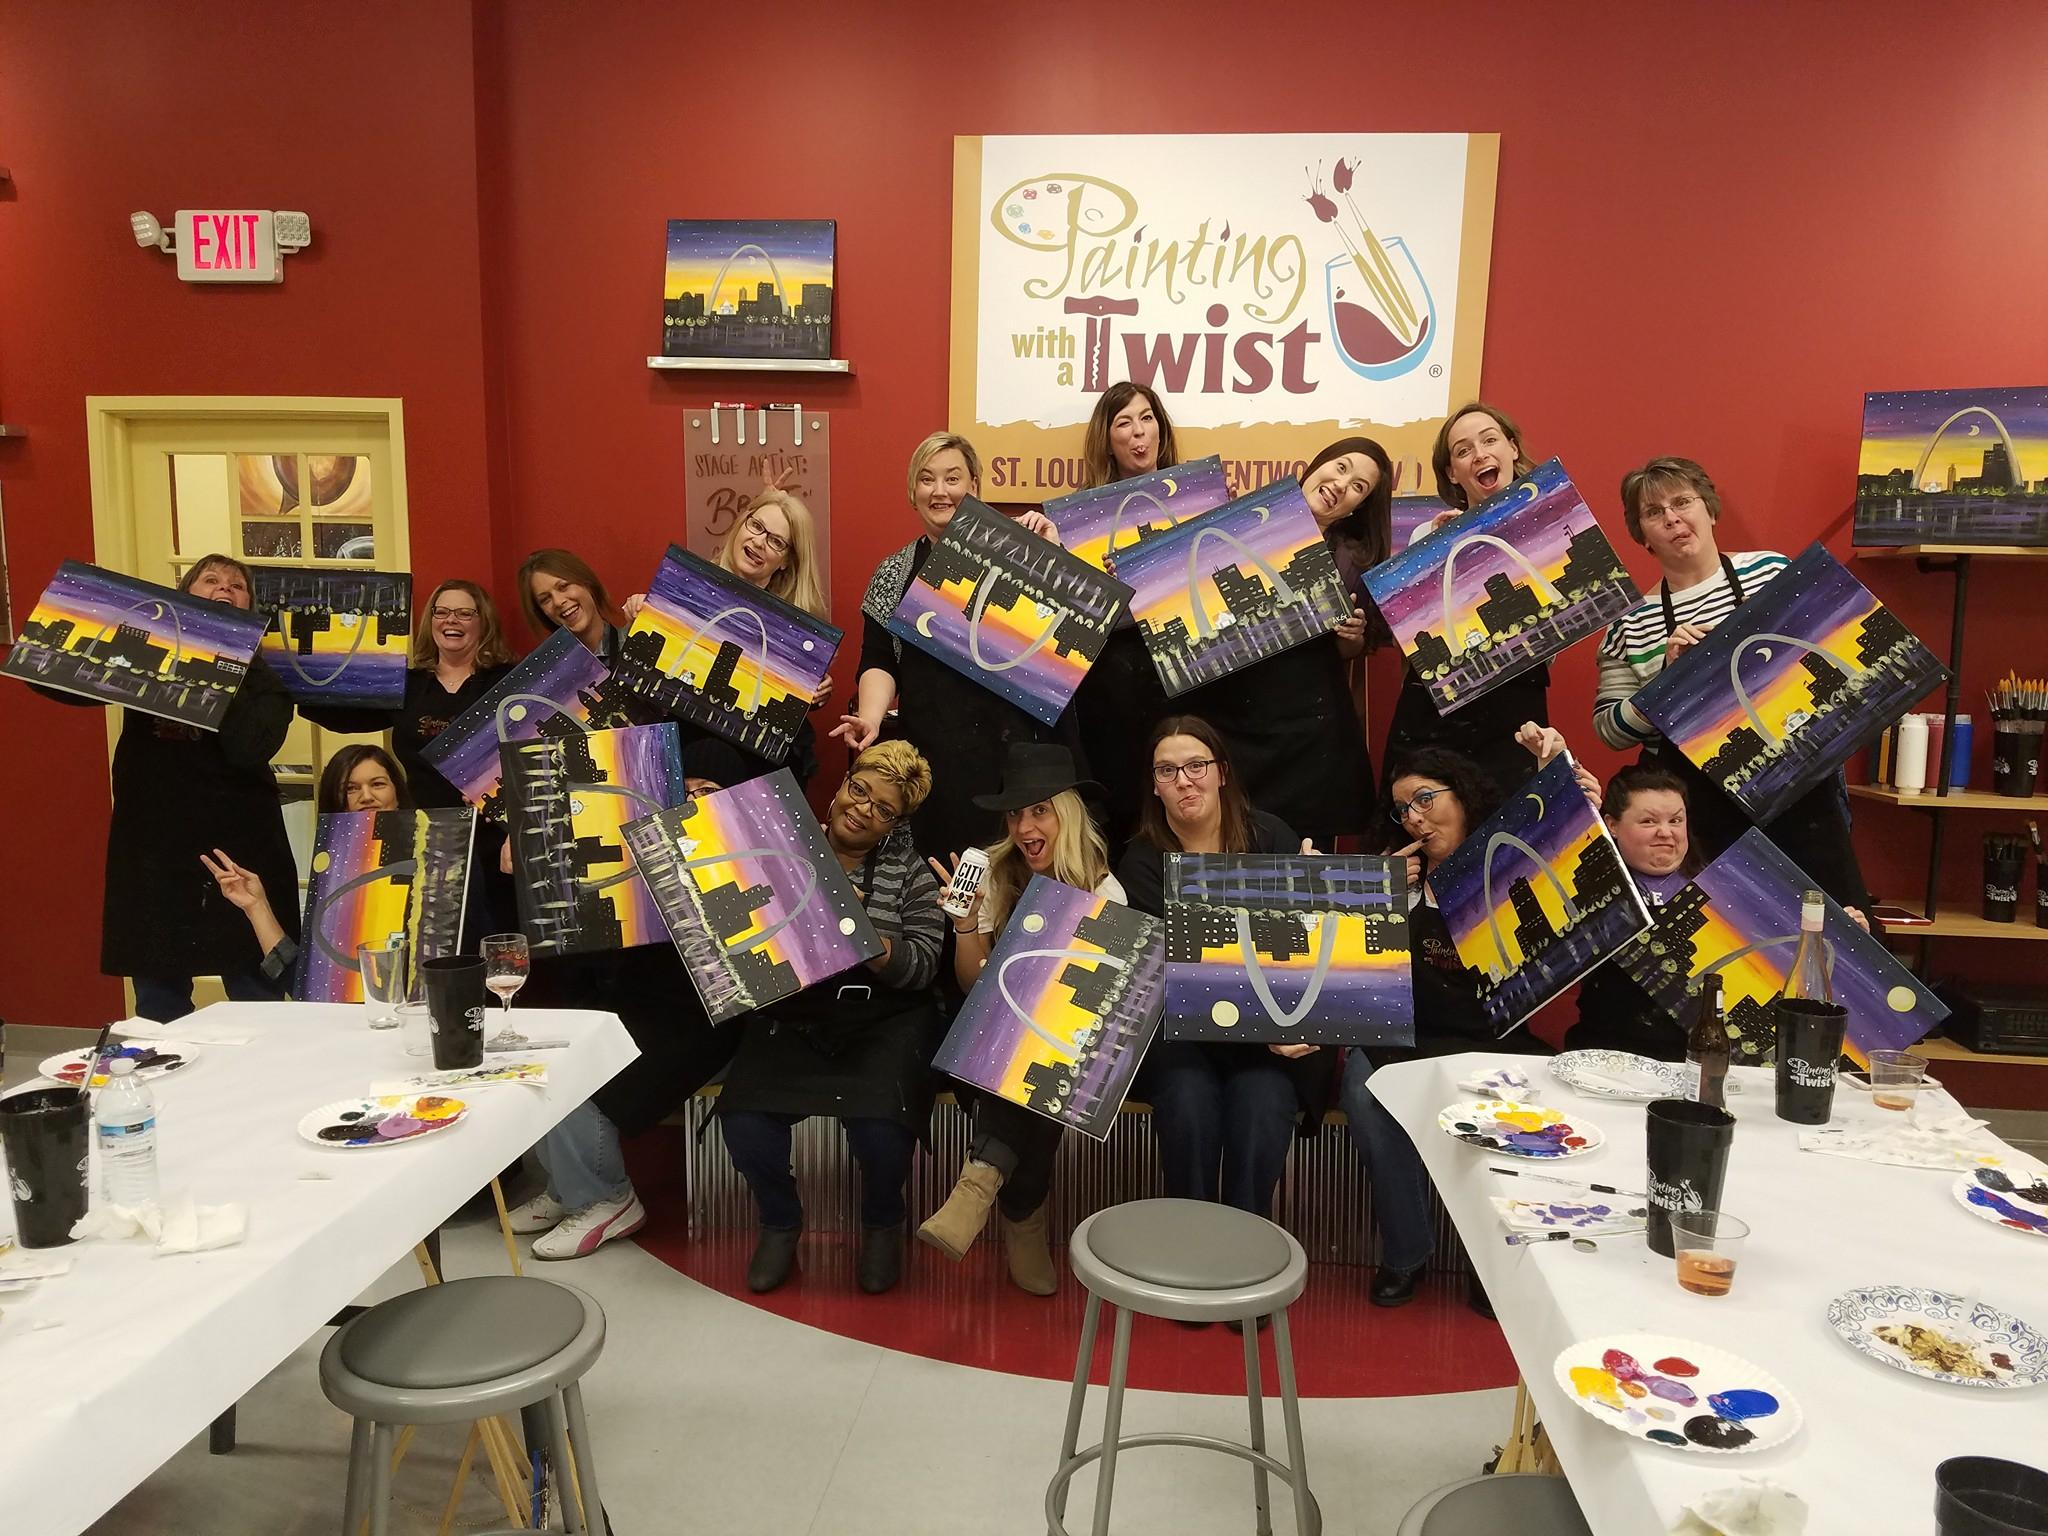 Painting with a twist coupons near me in st louis 8coupons for Painting with a twist chicago